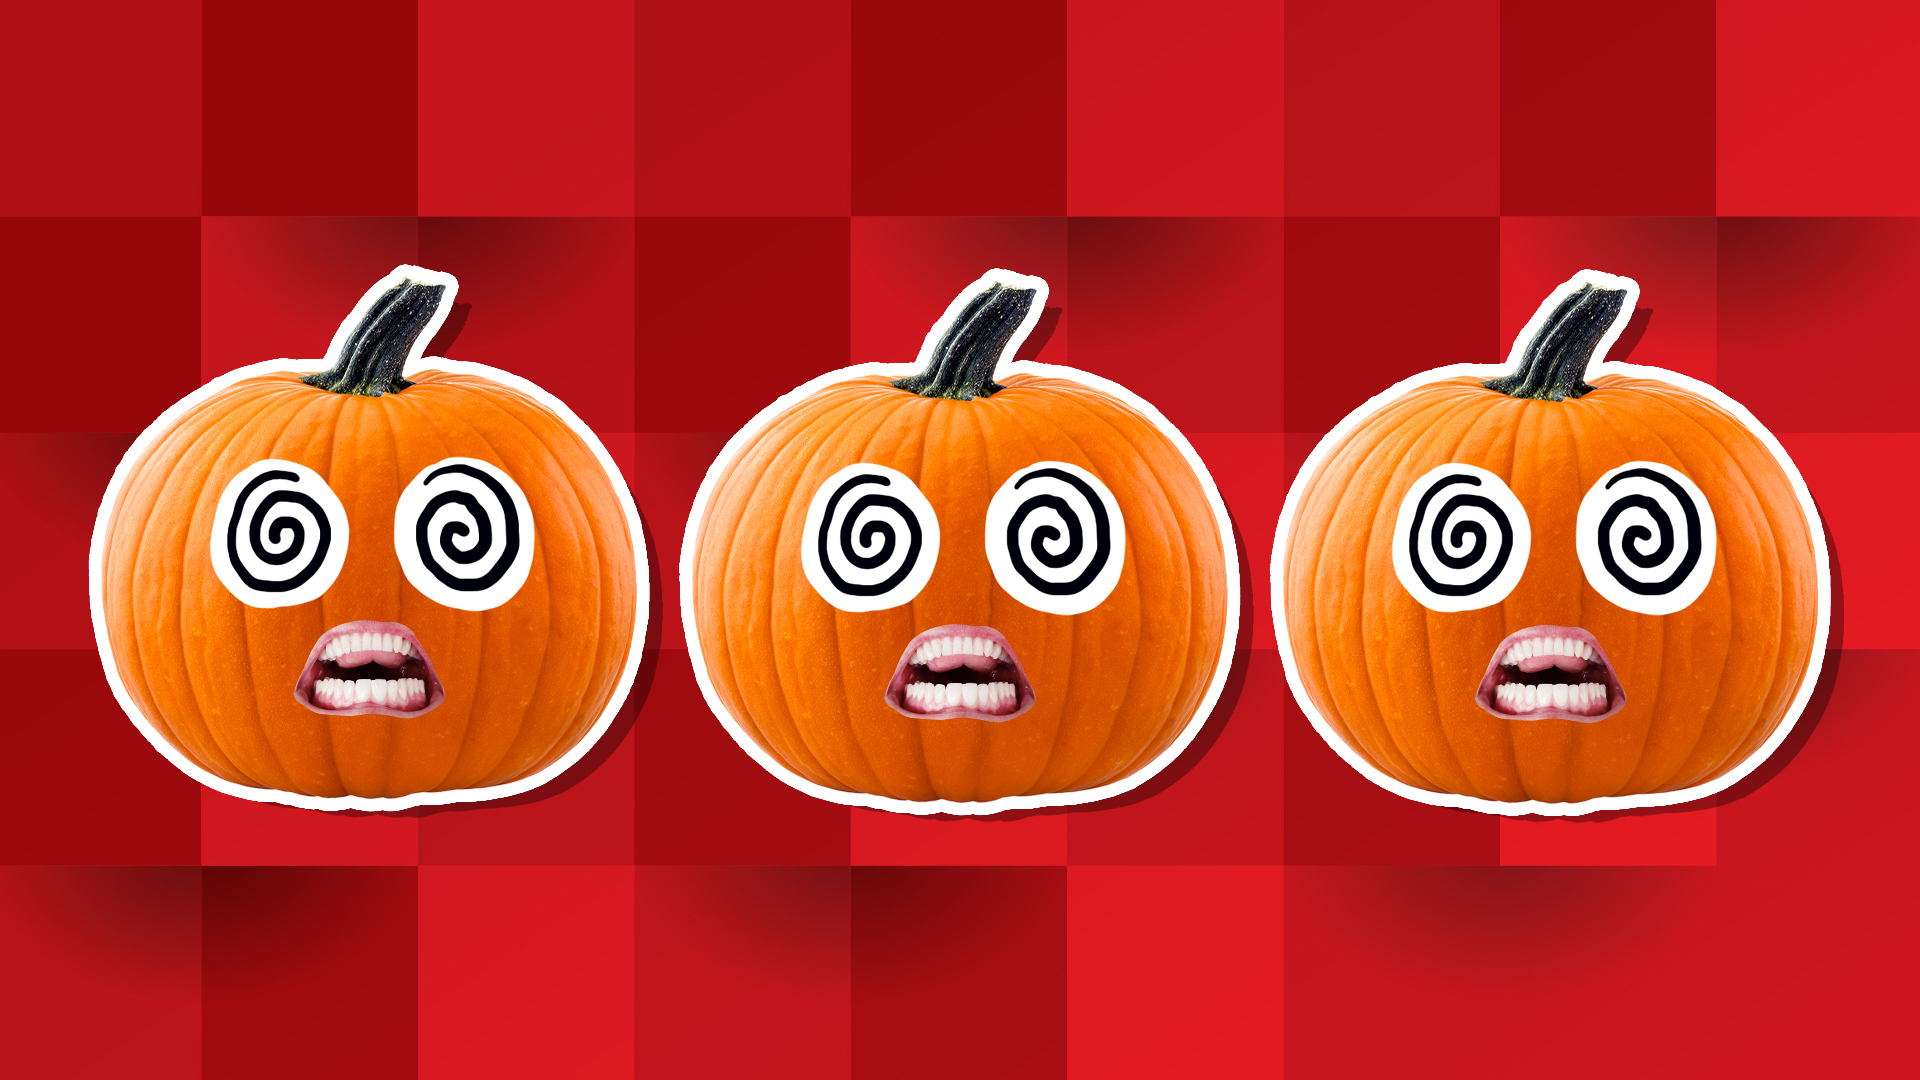 3 open mouthed Pumpkins